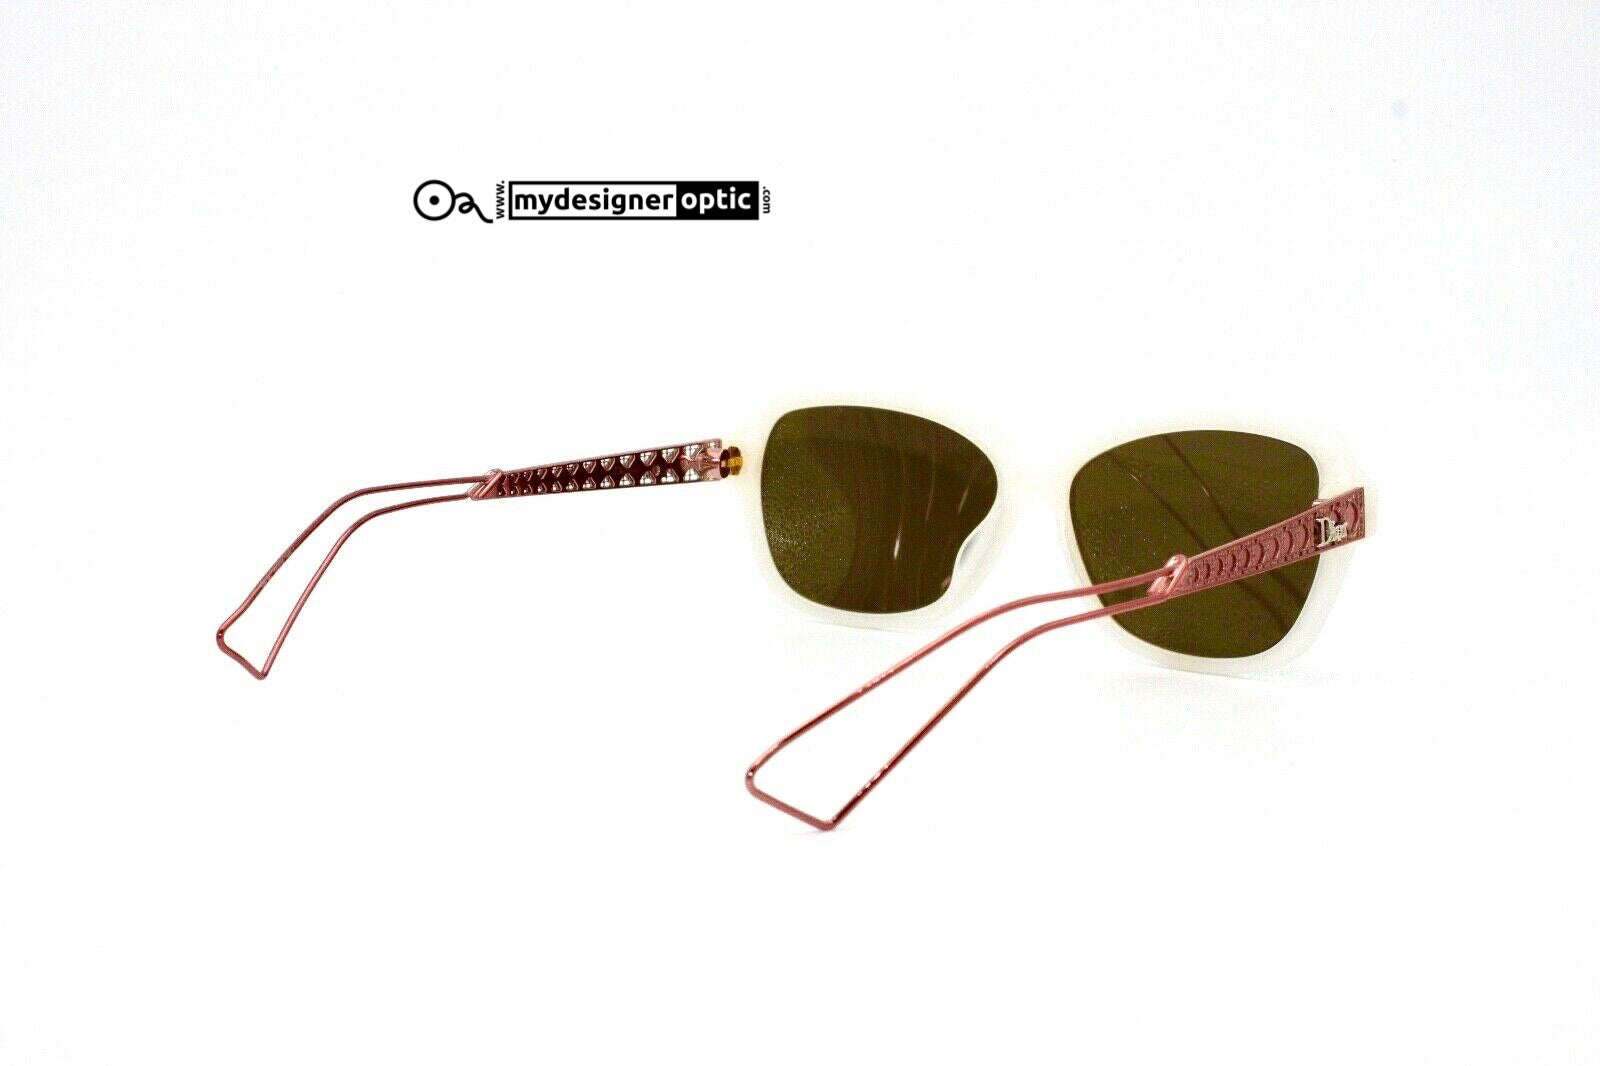 Diorama5 Sunglasses SBL8E 56-14-145 Made in Italy HS 3 (Real DEADSTOCK) - Mydesigneroptic